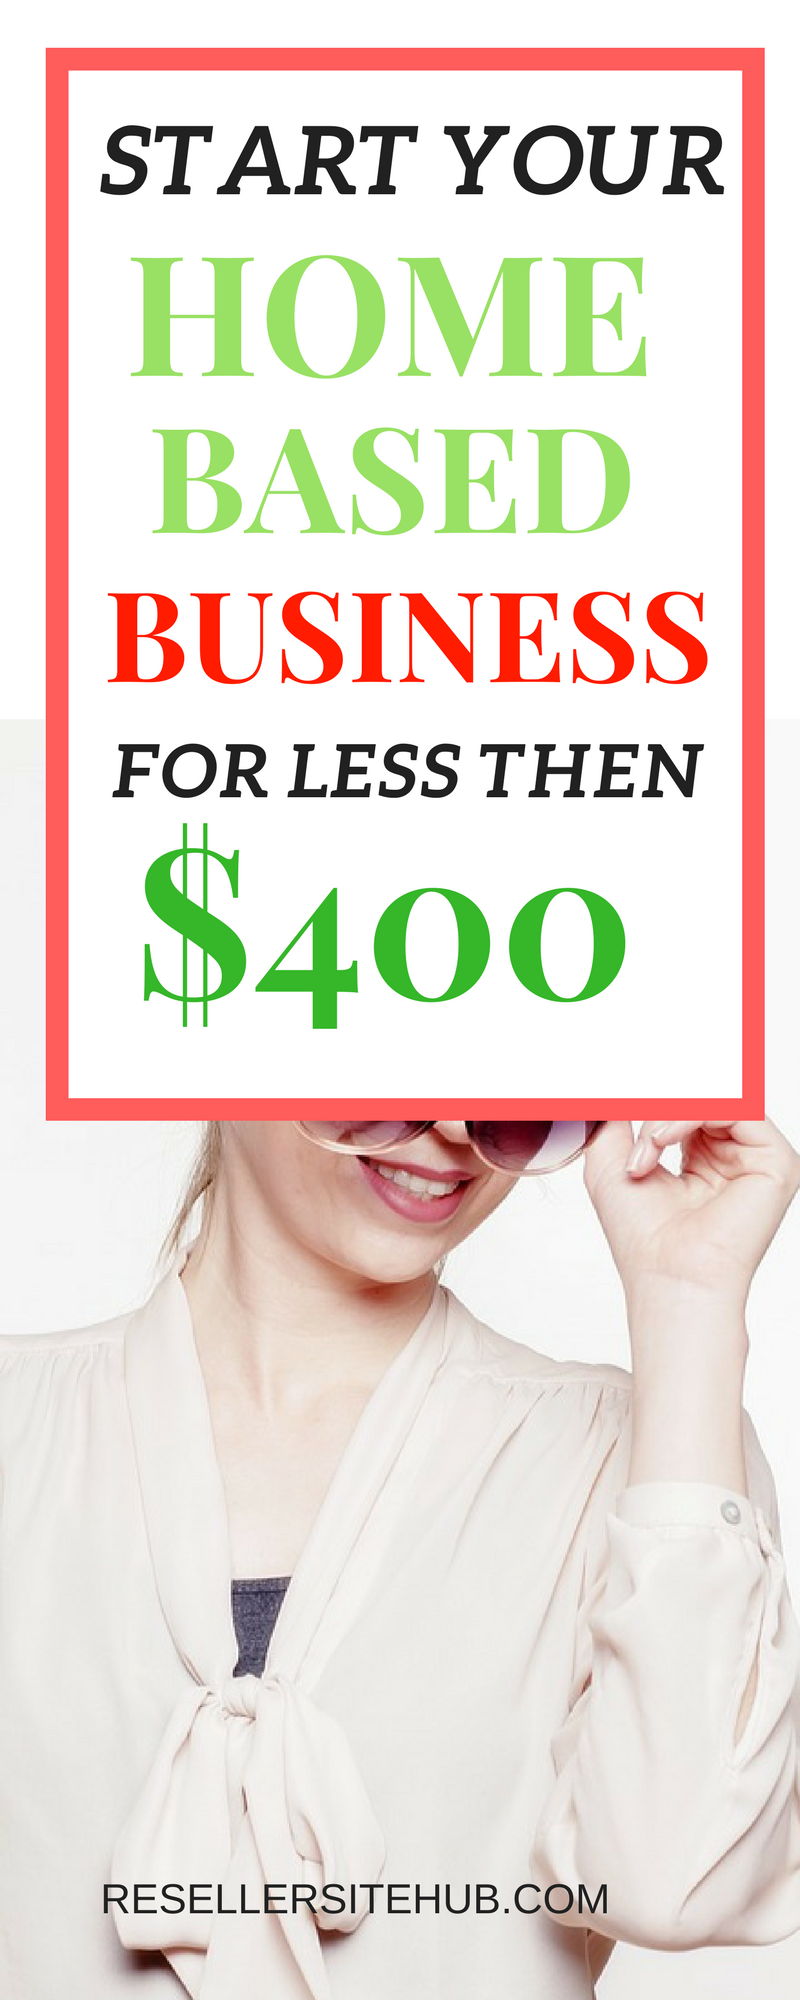 Home Based Business Ideas You Can Start For Under $400! | Business ...